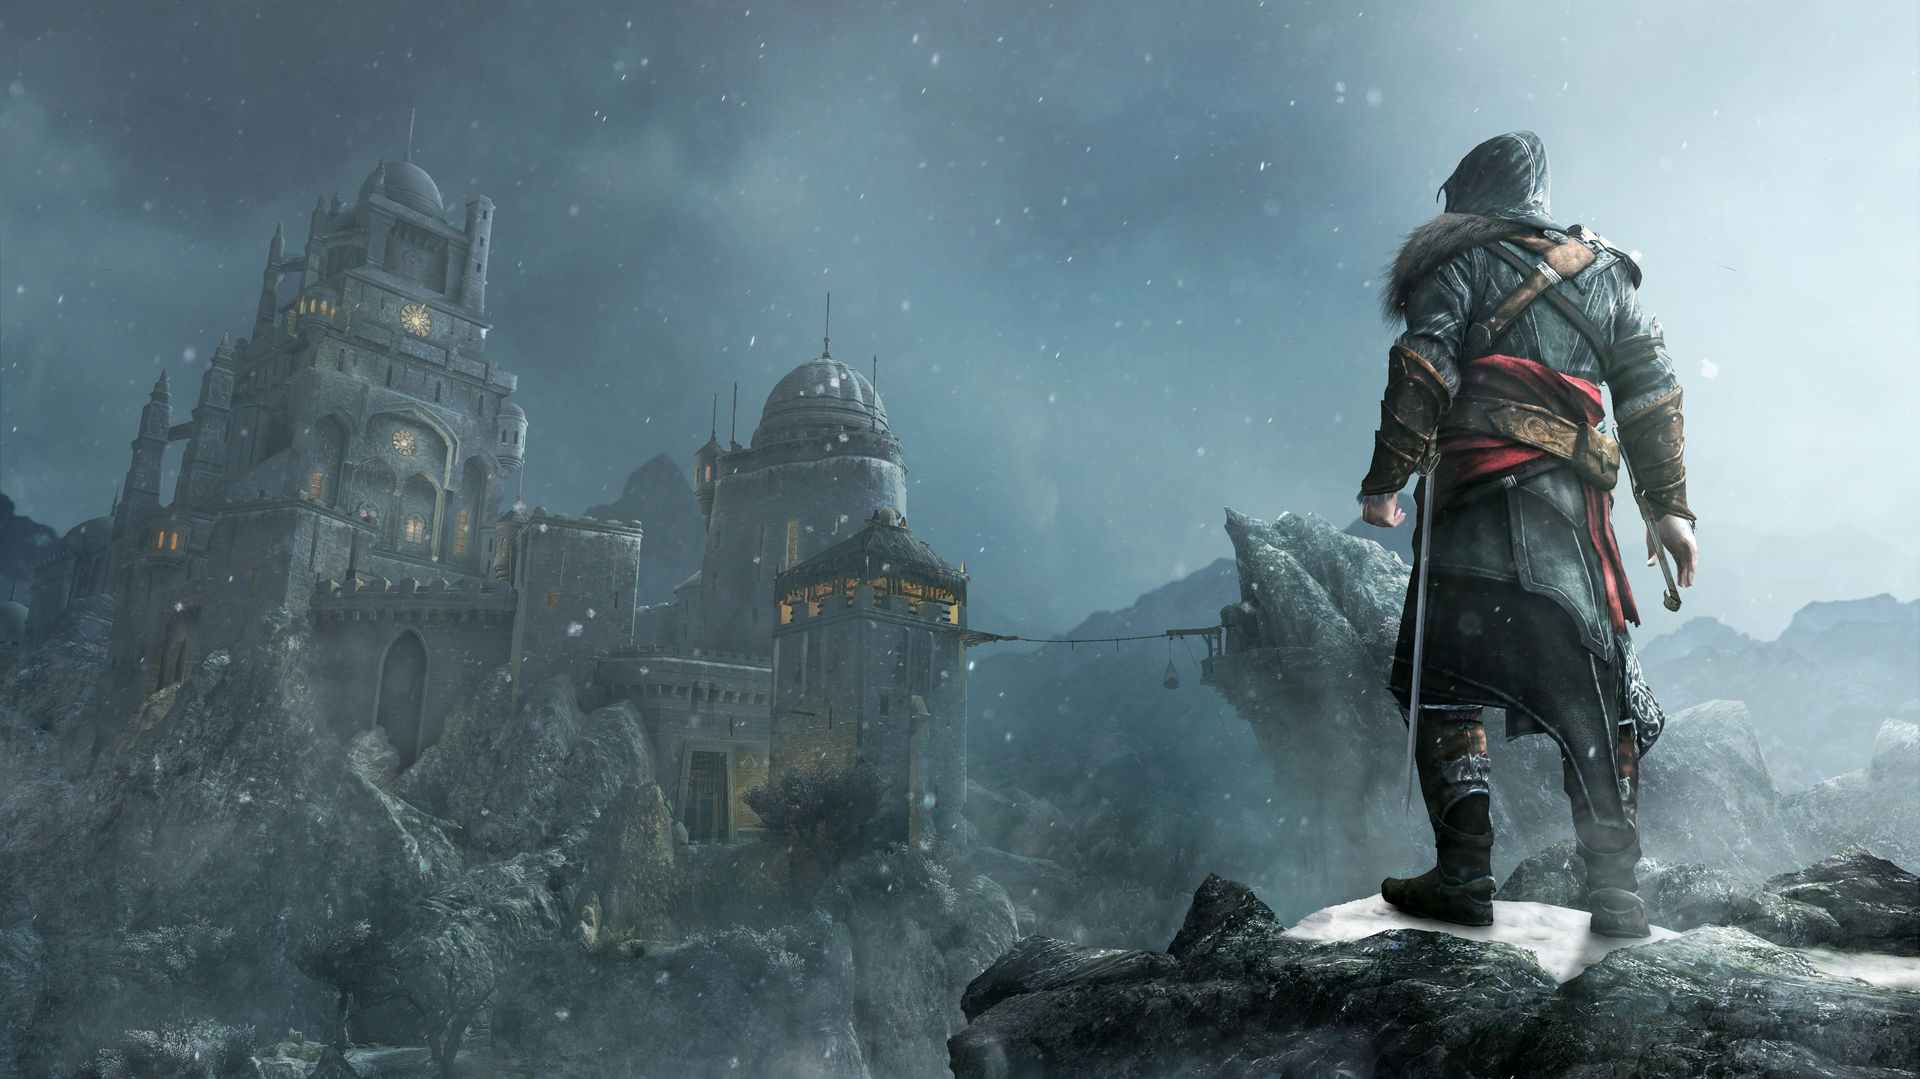 download assassin's creed revelations gold edition gog games release drm-free cd key steam origin pc uplay multiplayer addon online latest updates copiapop diskokosmiko xbox one 360 playstation 3 ps4